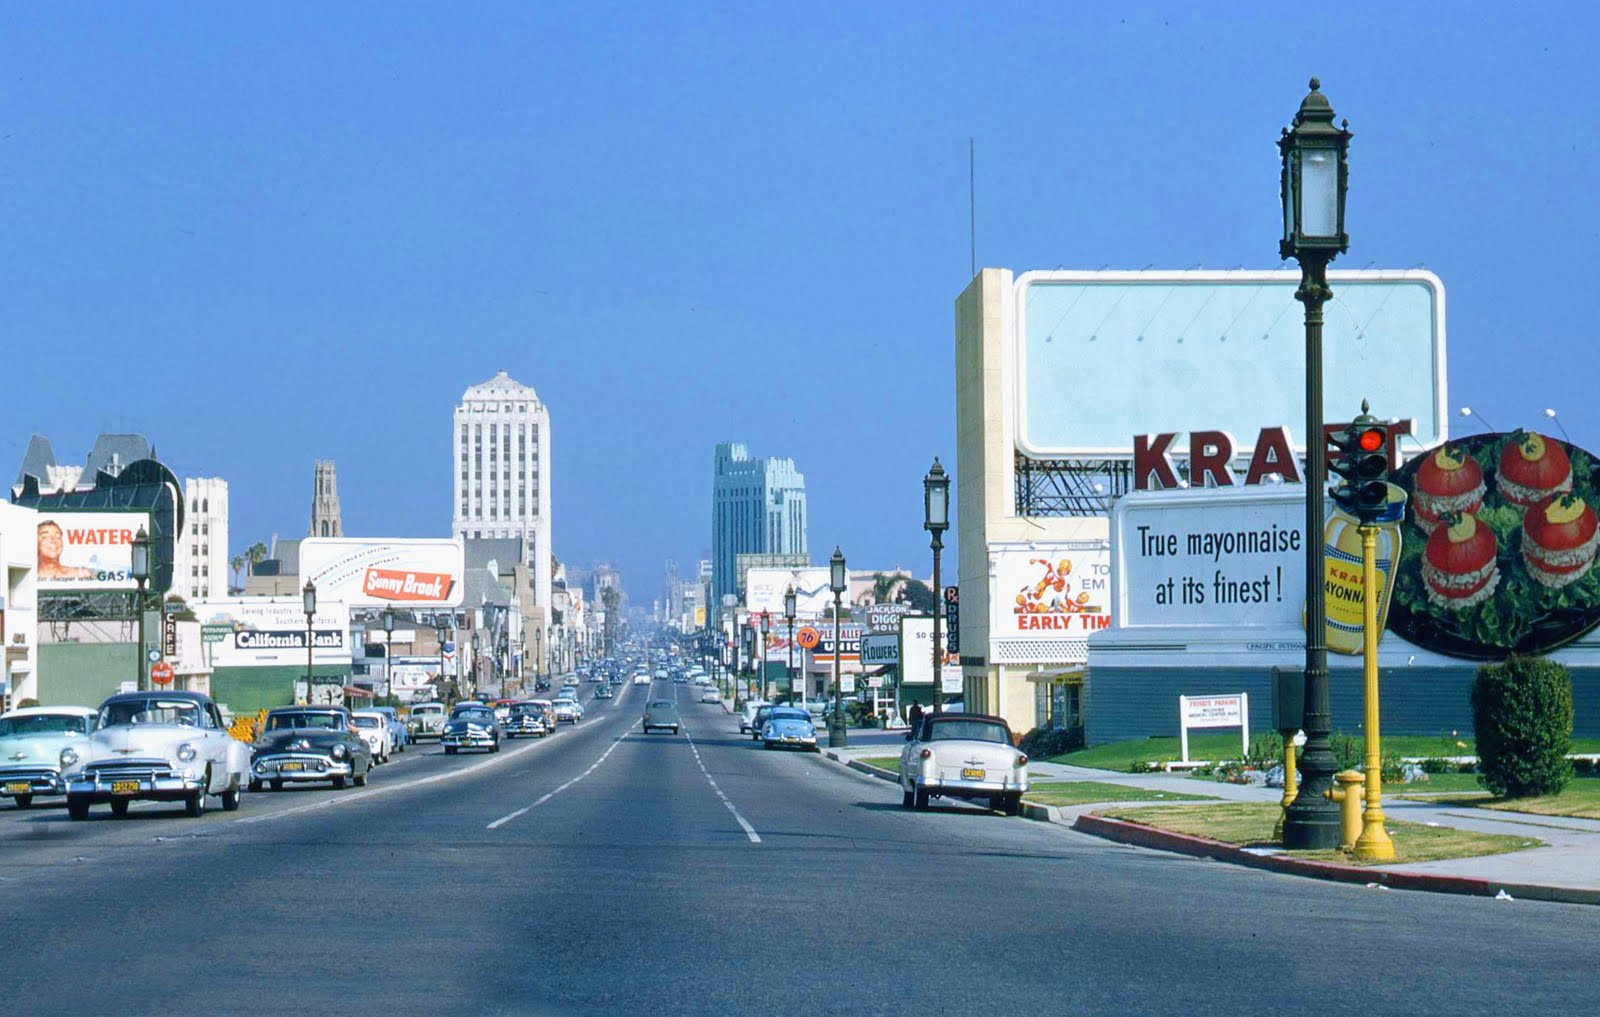 1954 Los Angeles looking down Blvd